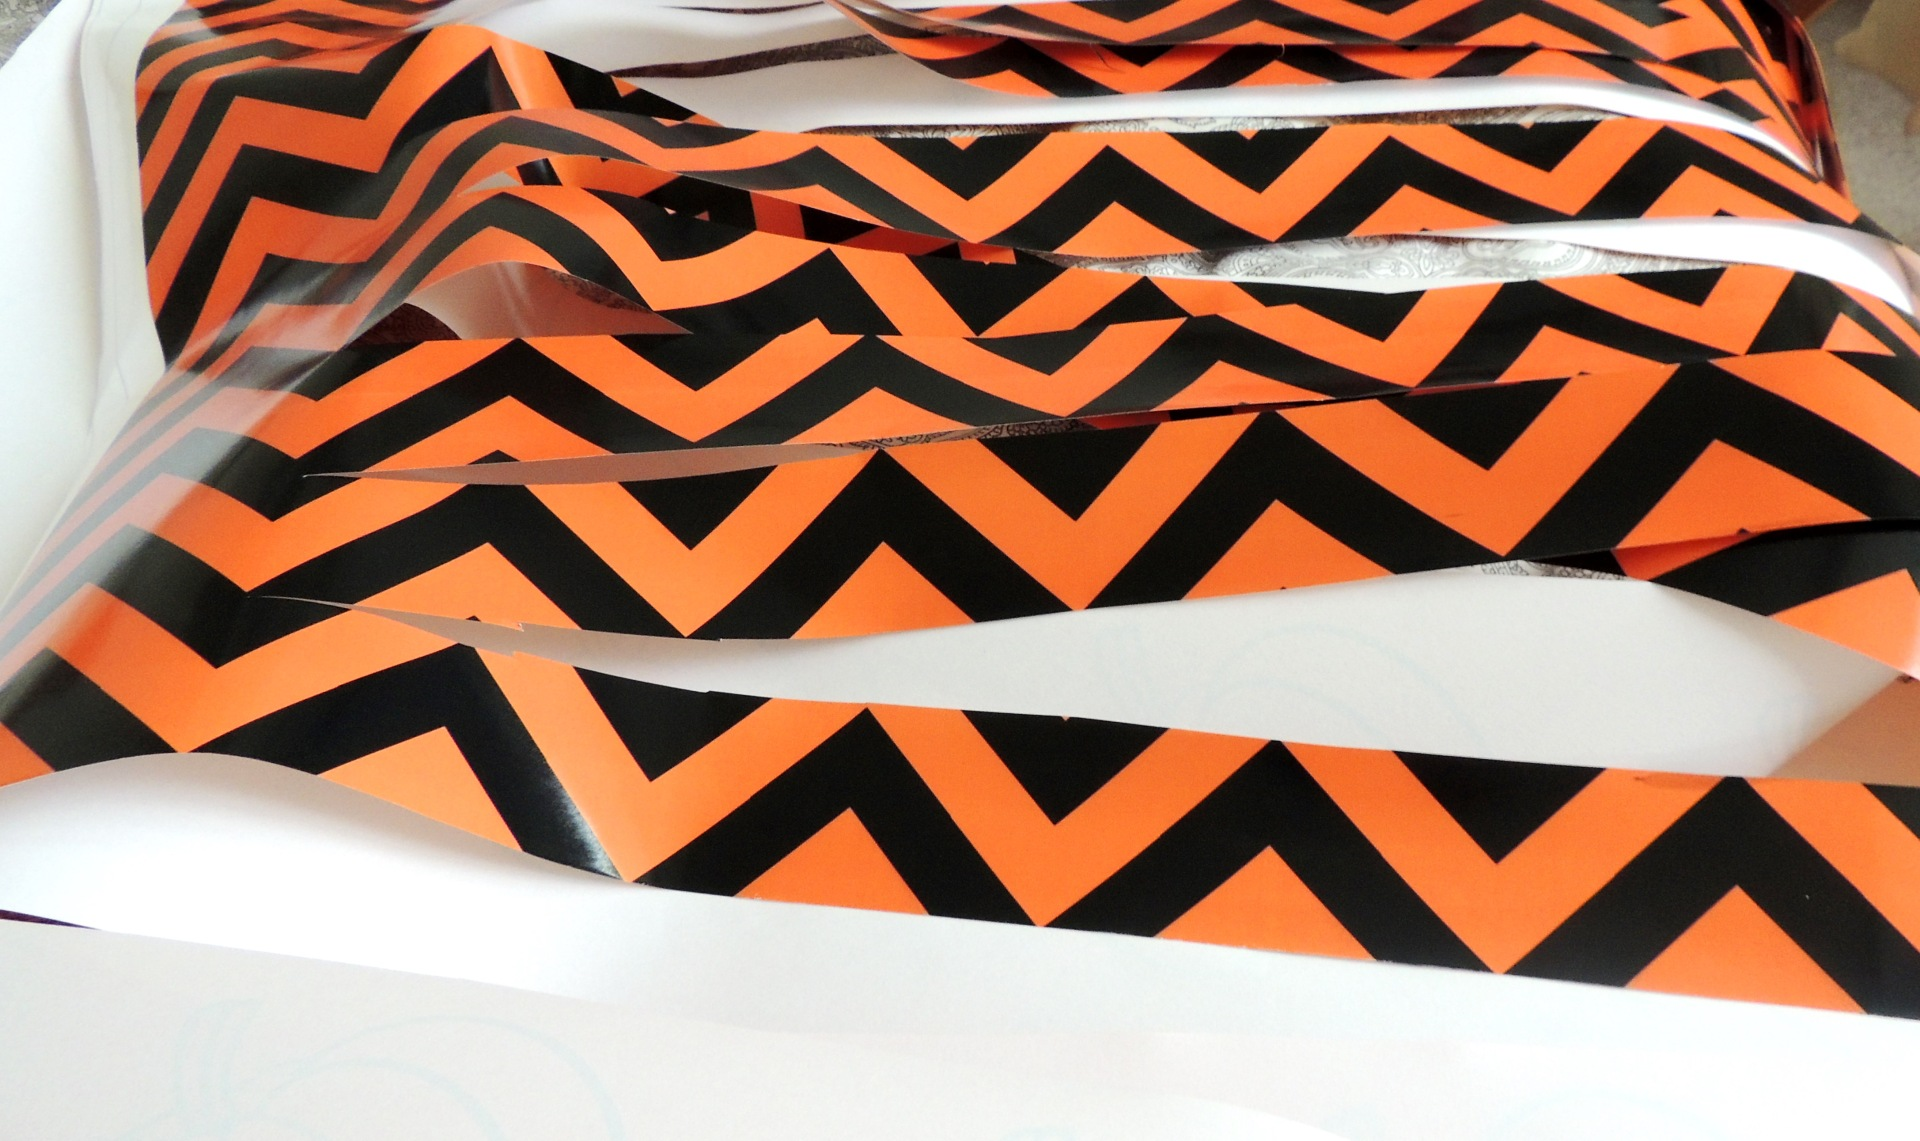 cut strips of orange and black paper